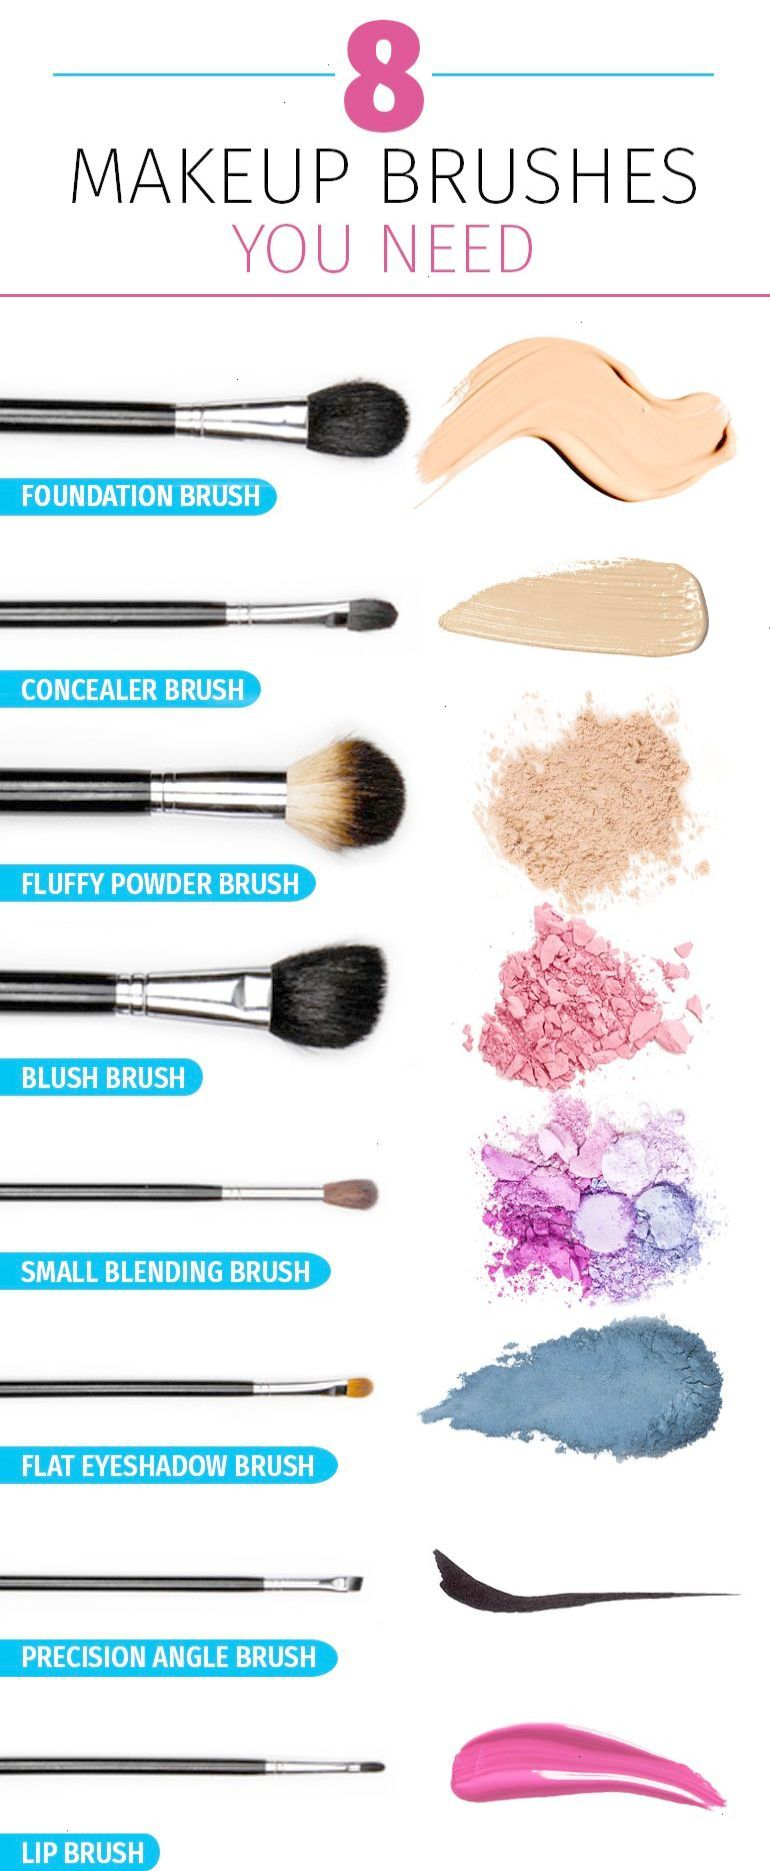 This makeup brushes guide will make sure you have everything